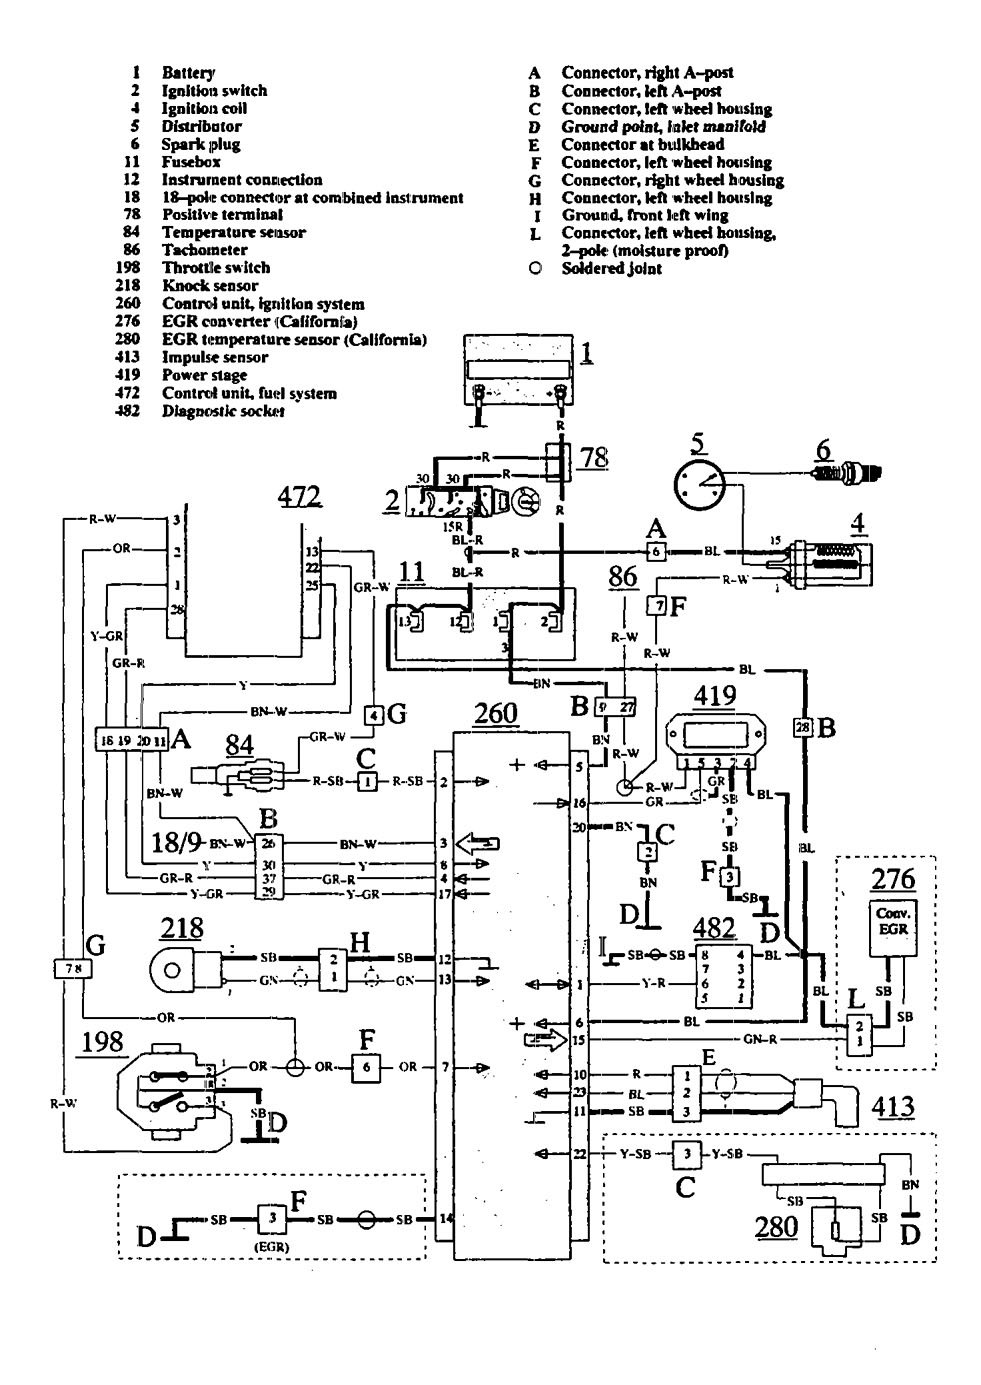 [DIAGRAM] Volvo 740 Wiring Diagram 1991 FULL Version HD